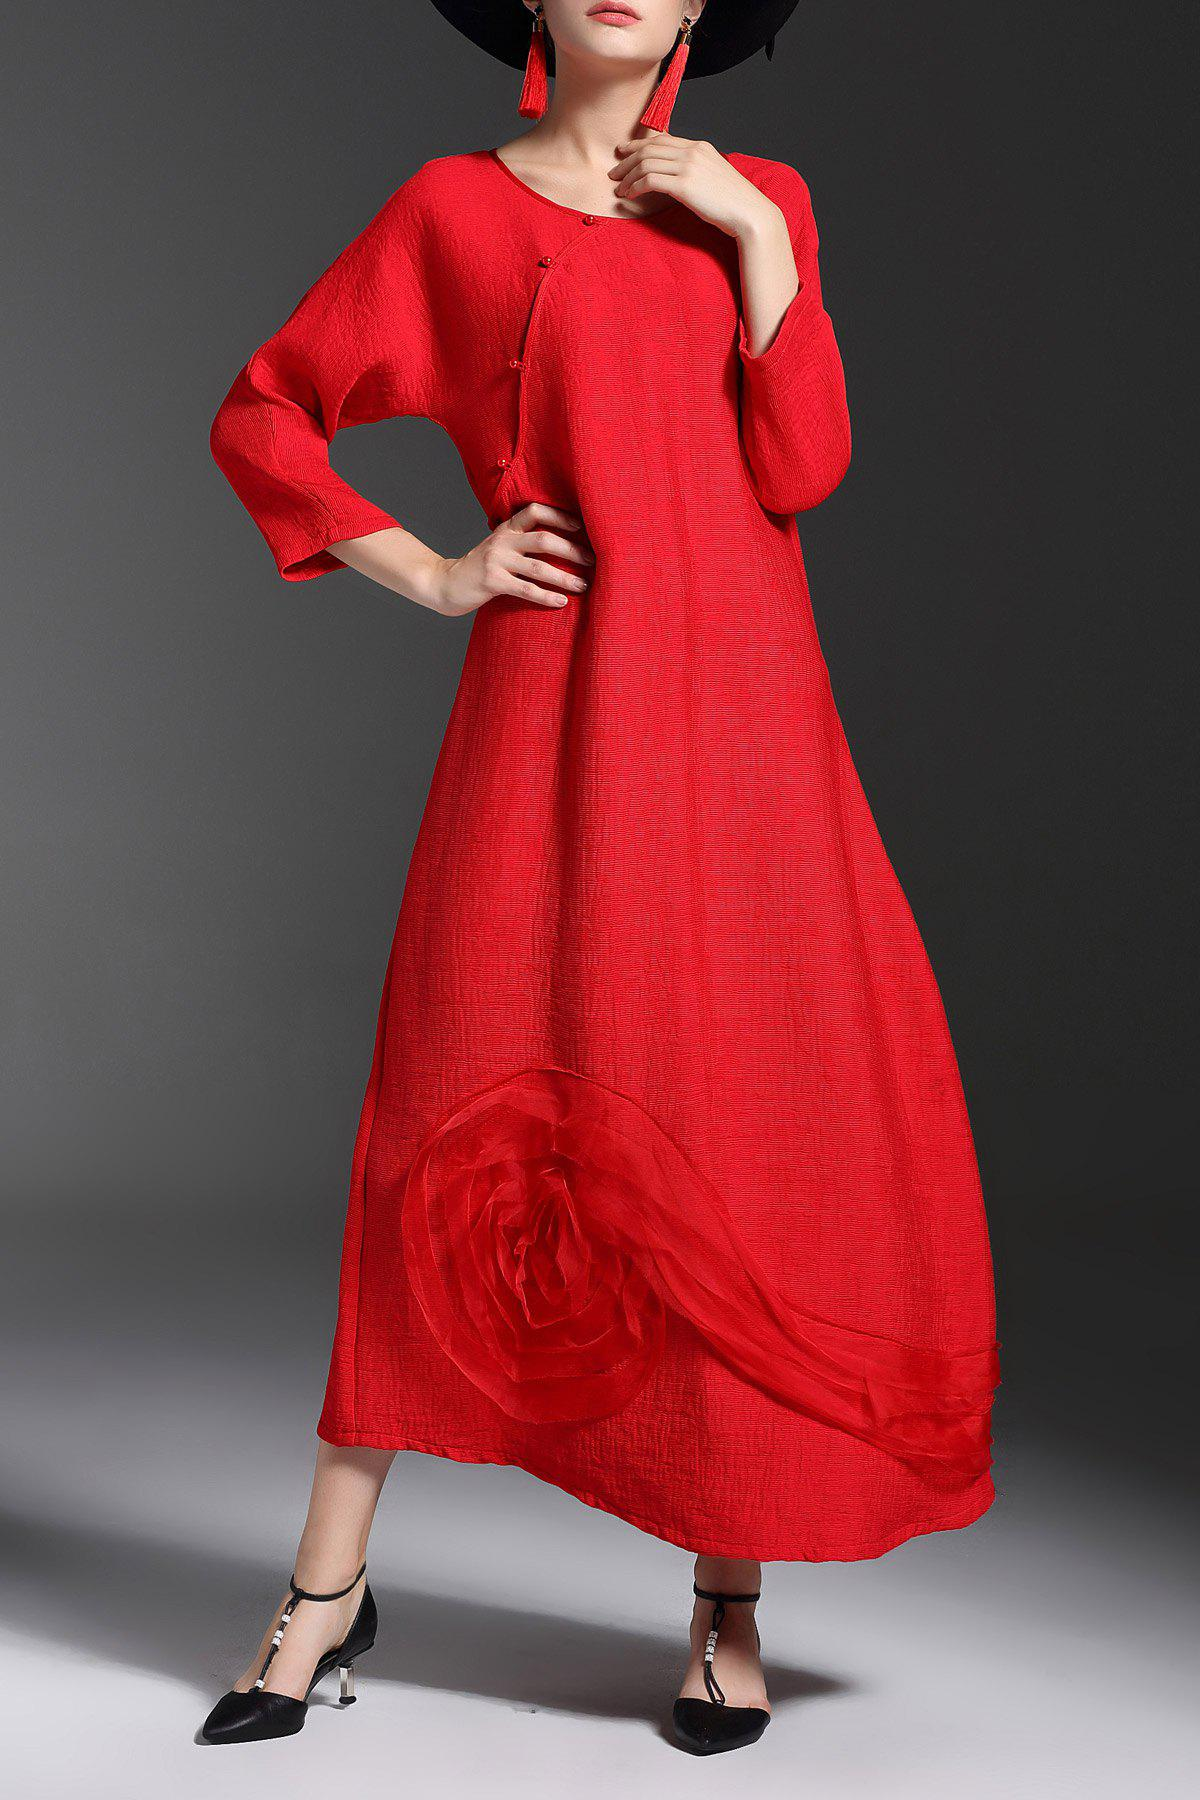 2018 Long Sleeve Loose Maxi Dress In Red Xl | Rosegal.com